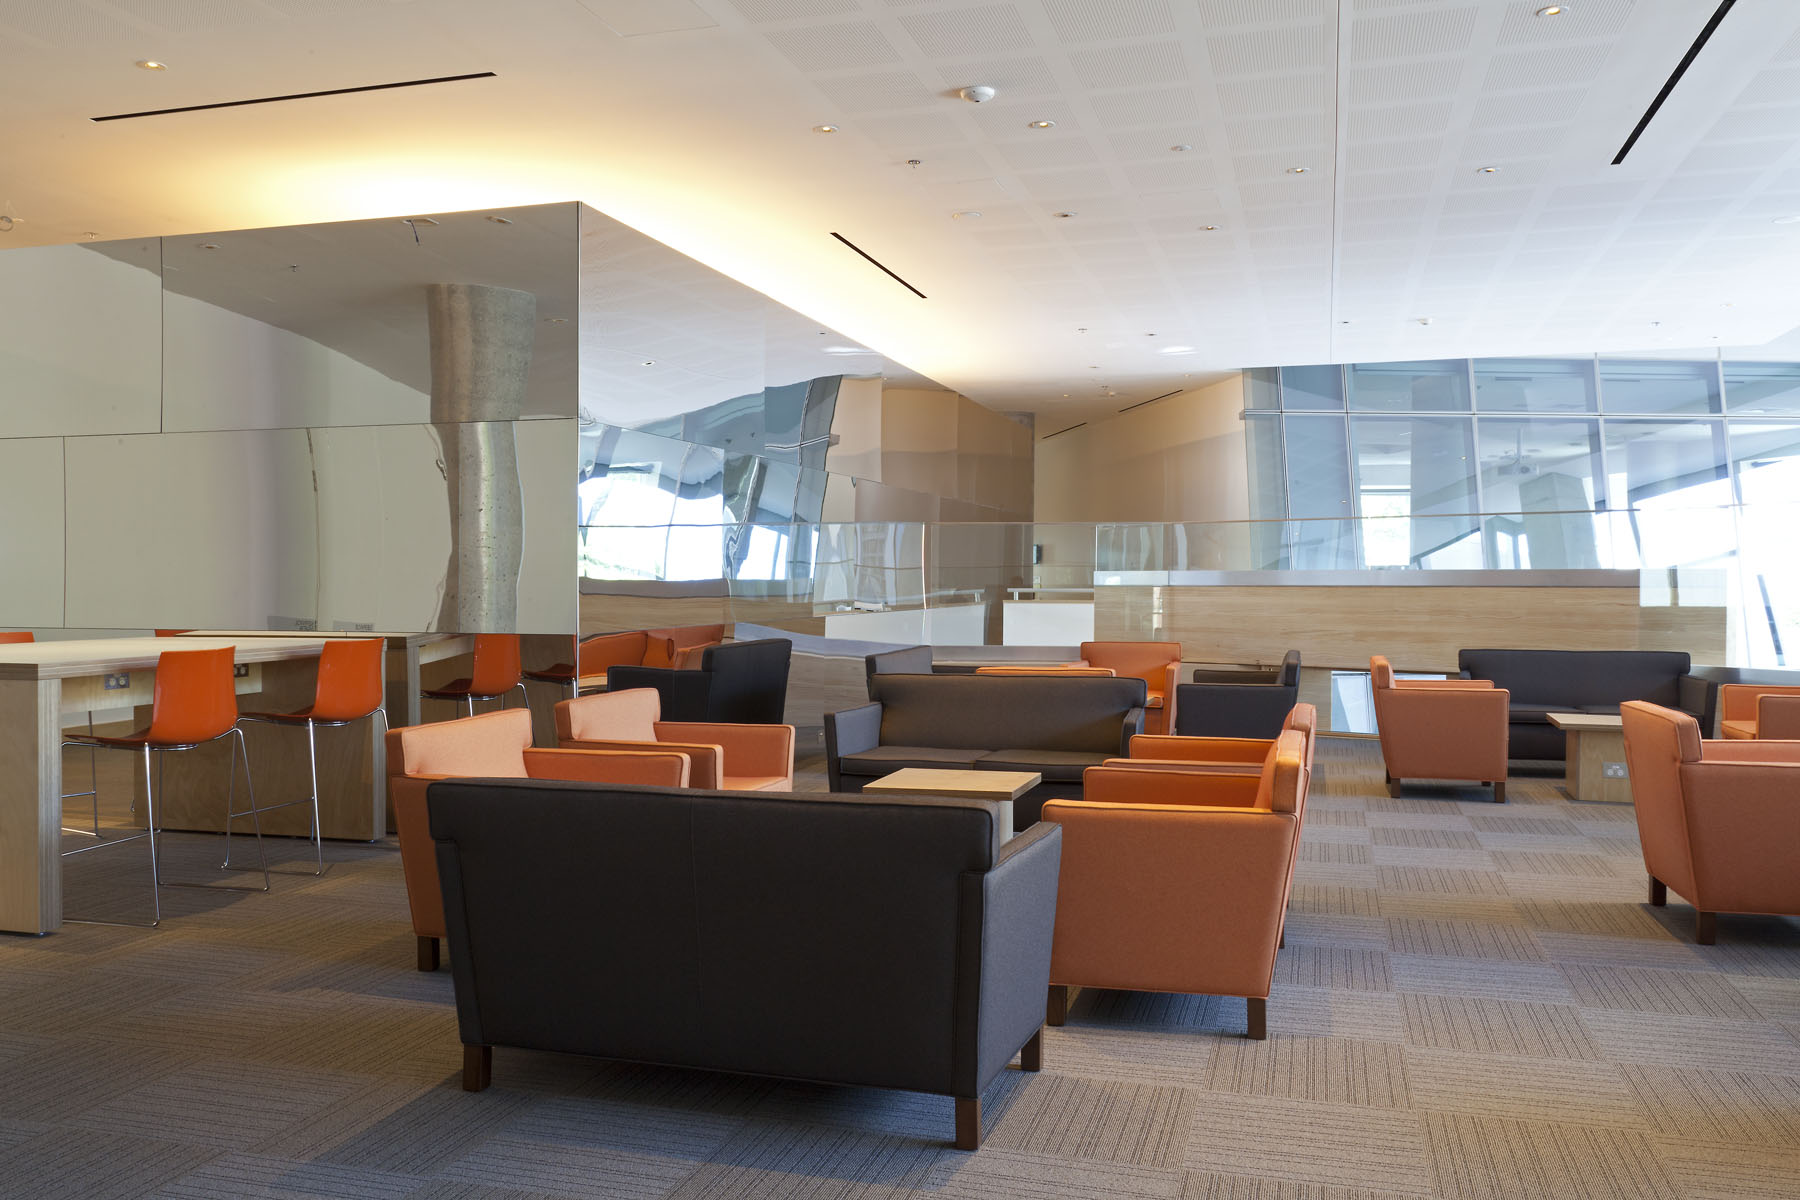 The graduate lounges on level four feature informal student seating to relax, study and connect. There is a well equipped kitchen and many power point plugs available for student convenience.